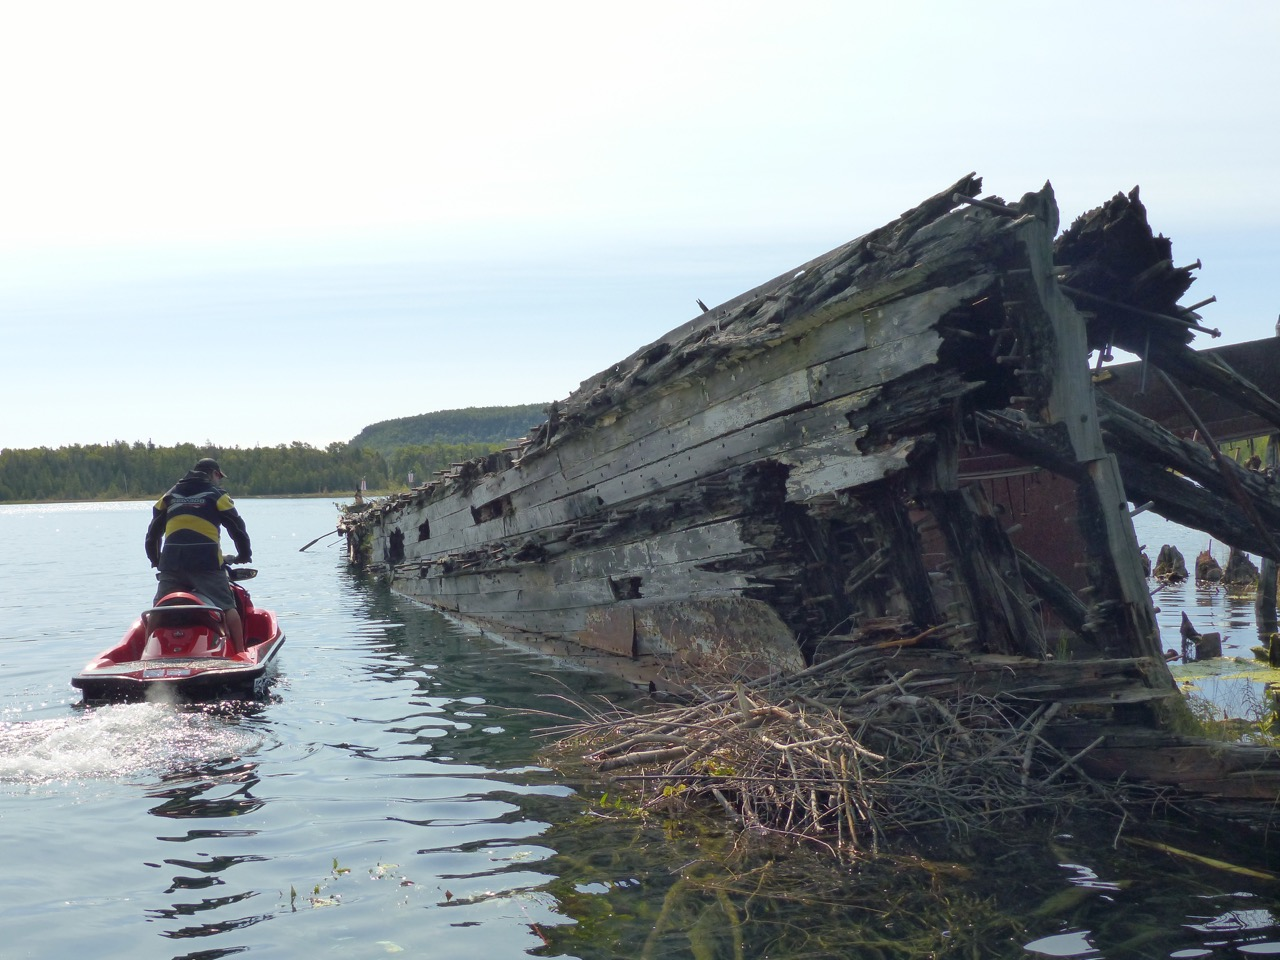 Sea Doo rider beside shipwreck on Bruce Peninsula Sea Doo tour